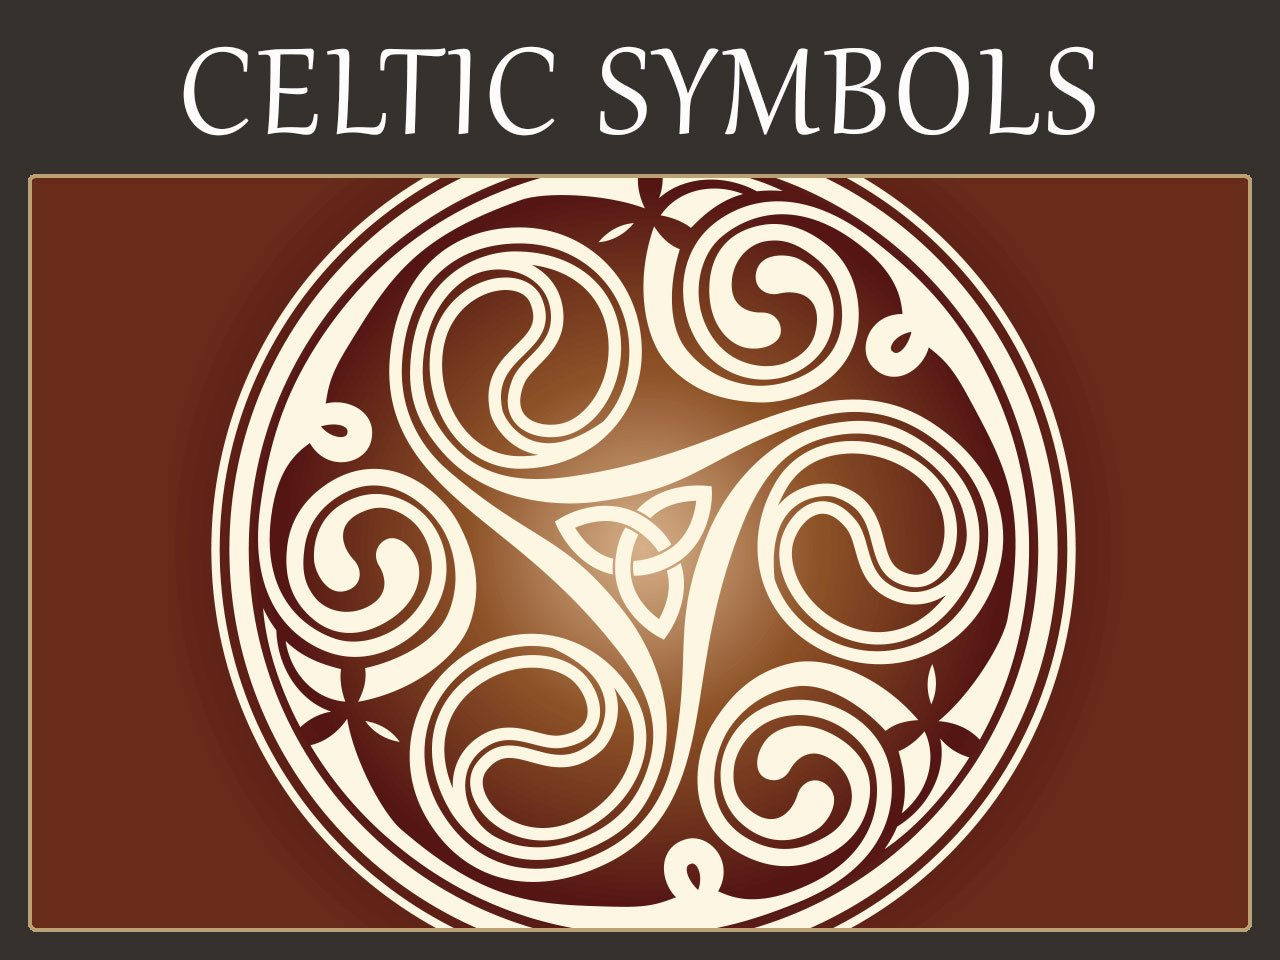 Celtic Symbols Meanings Celtic Cross Triquetra Celtic Knot